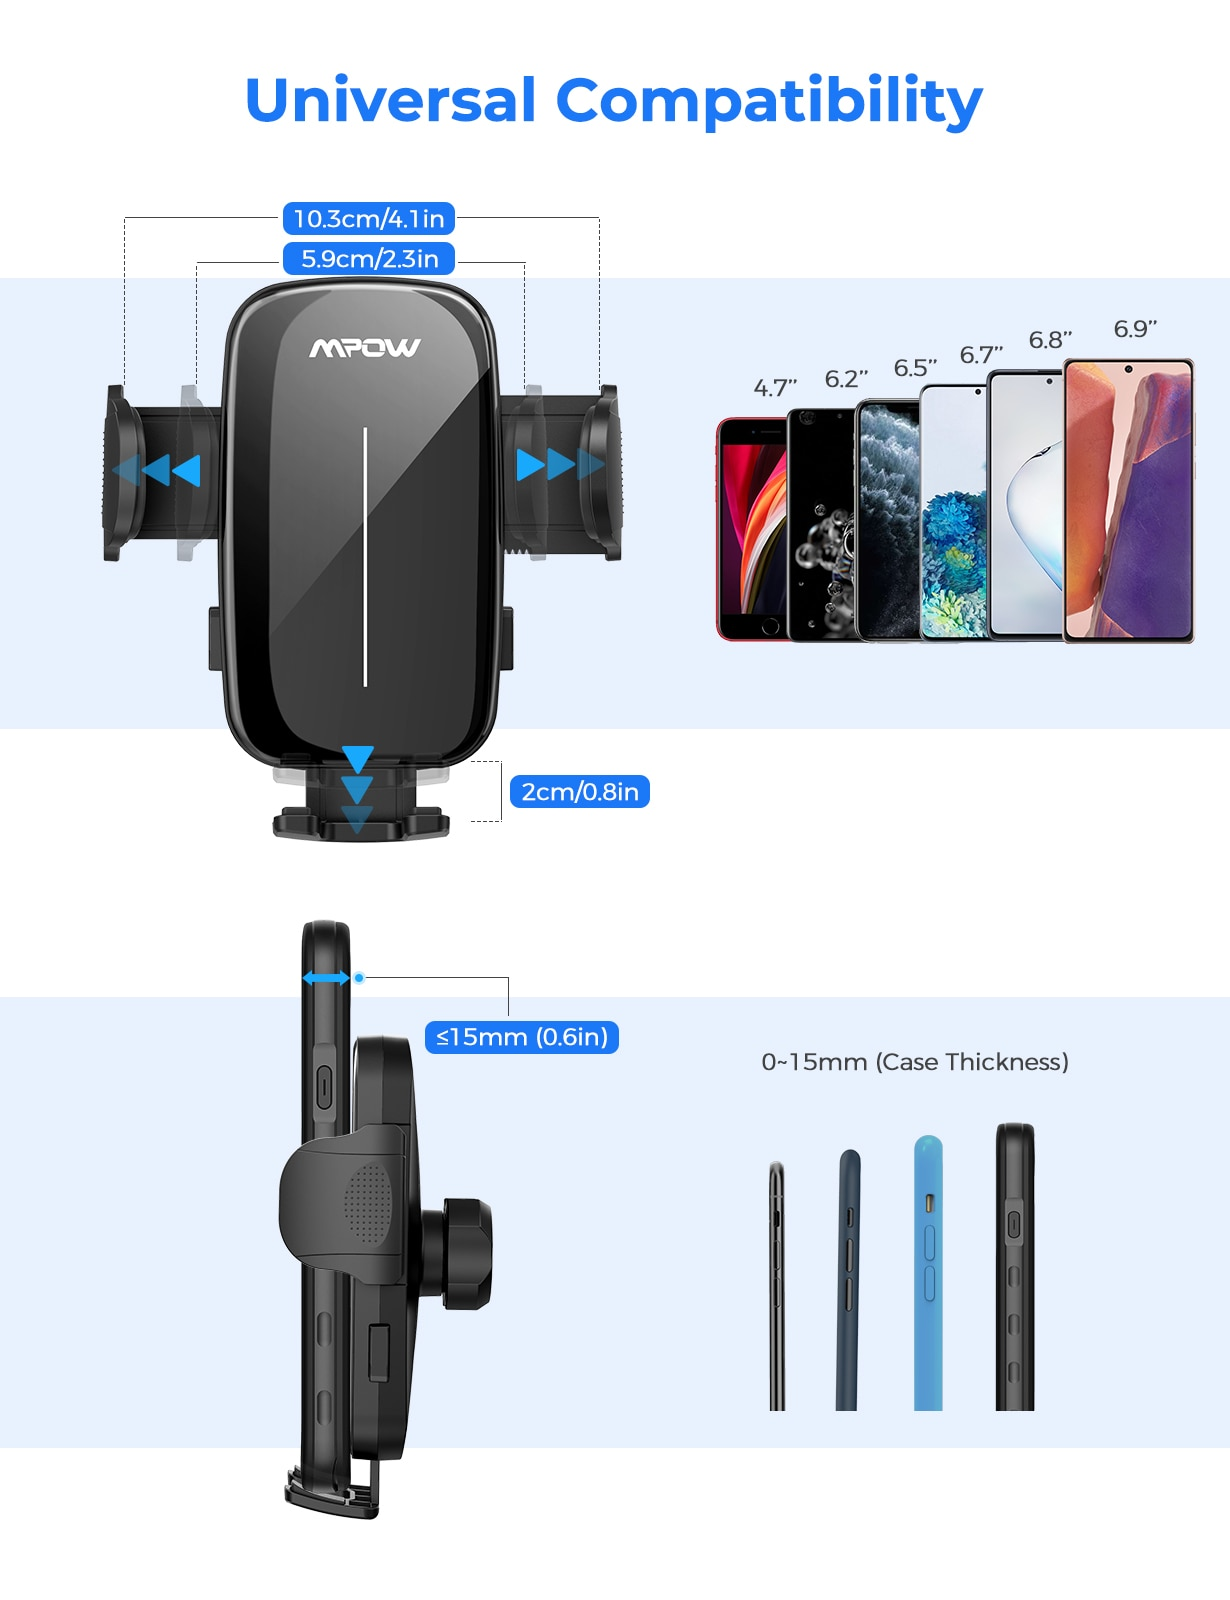 Hcf4328c866df4bf0a7b7ad4203580cccs - MPOW CA159 Upgraded Long Gooseneck Phone Holder for Car Windshield Car Phone Mount for iPhone SE 11 Pro Galaxy Note and More